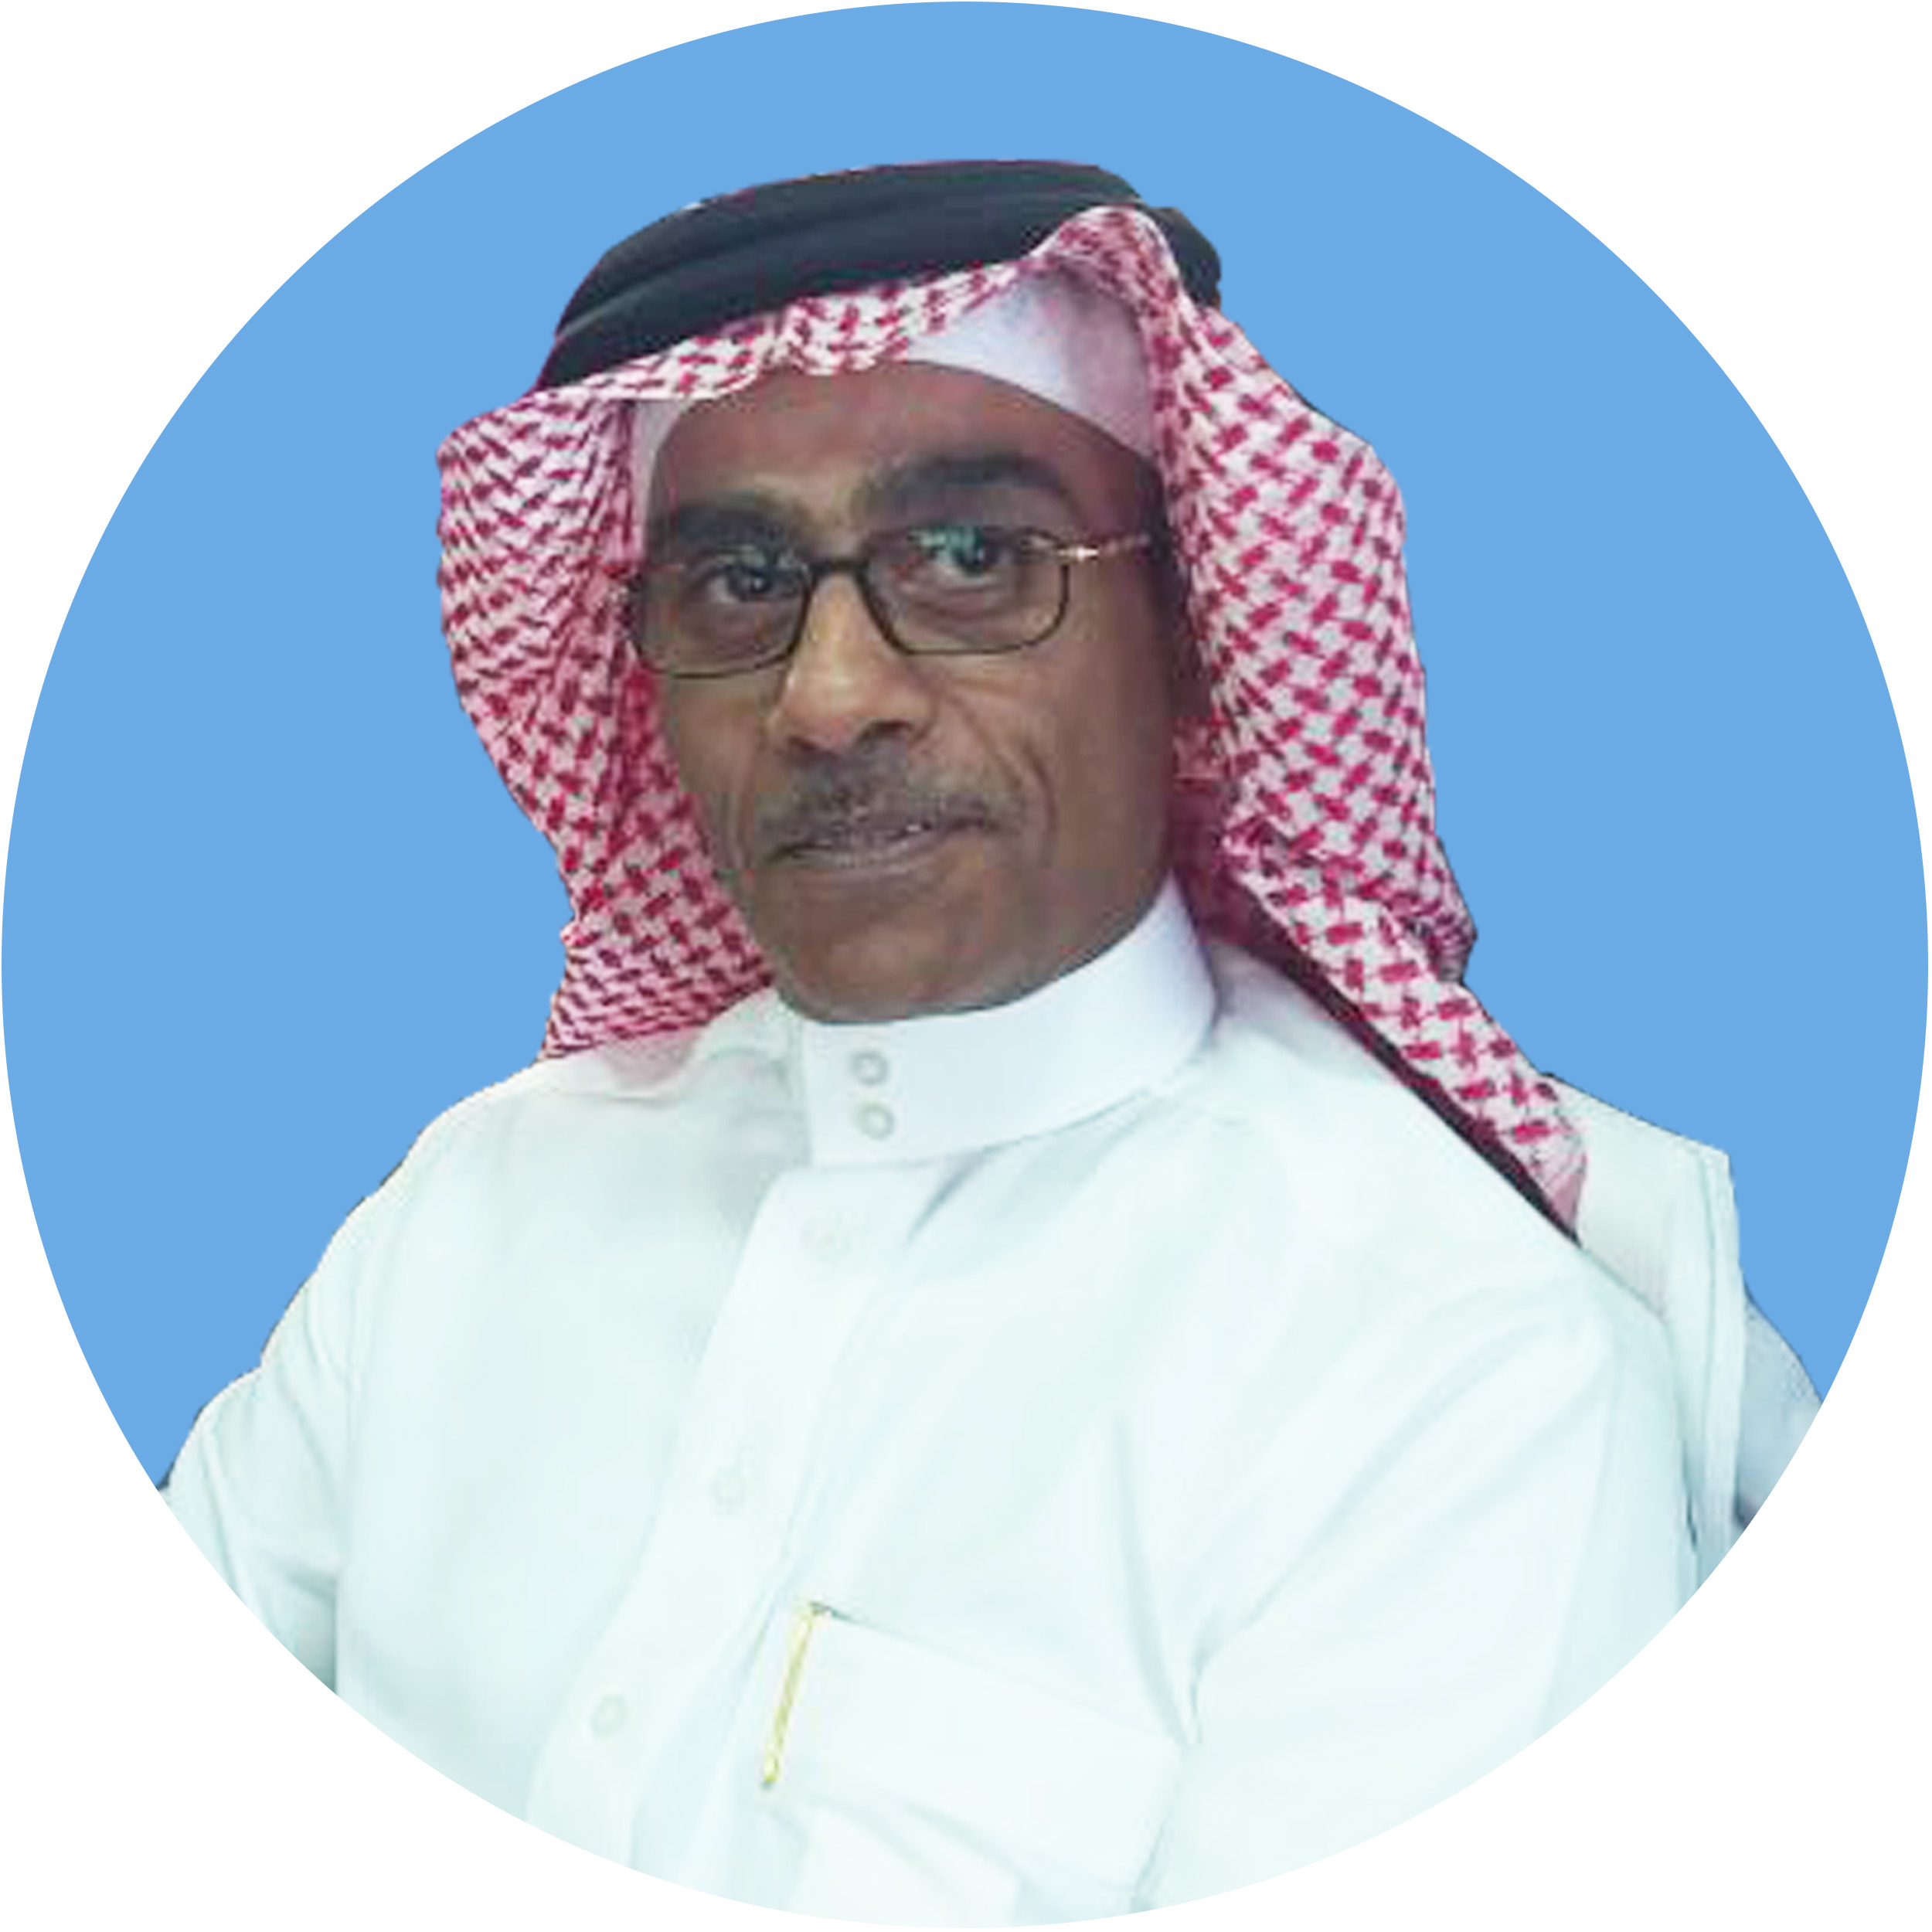 Mr. Majed A. Al-Betairy